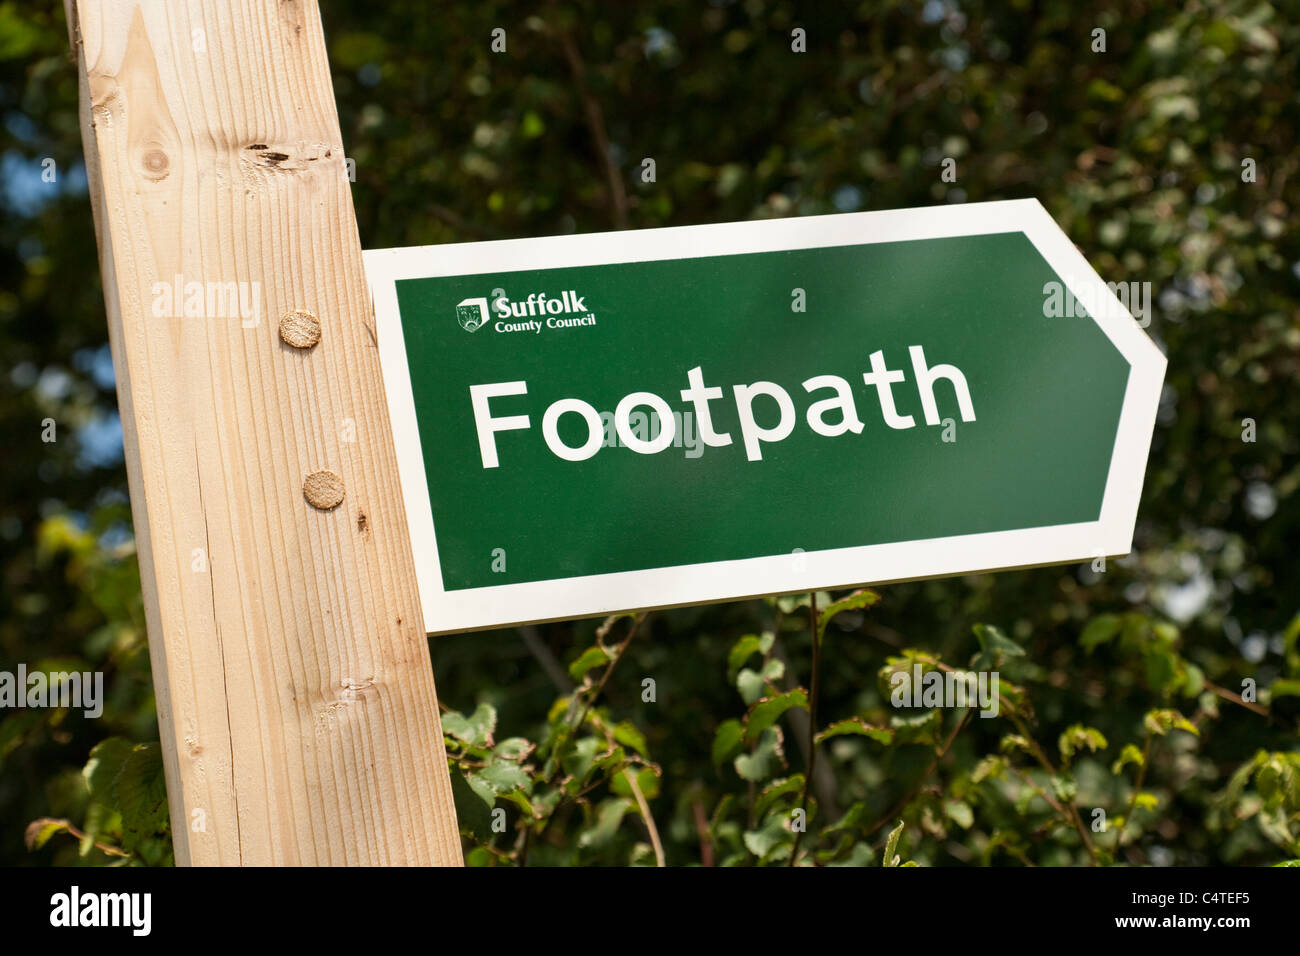 Suffolk County Council public footpath sign - Stock Image